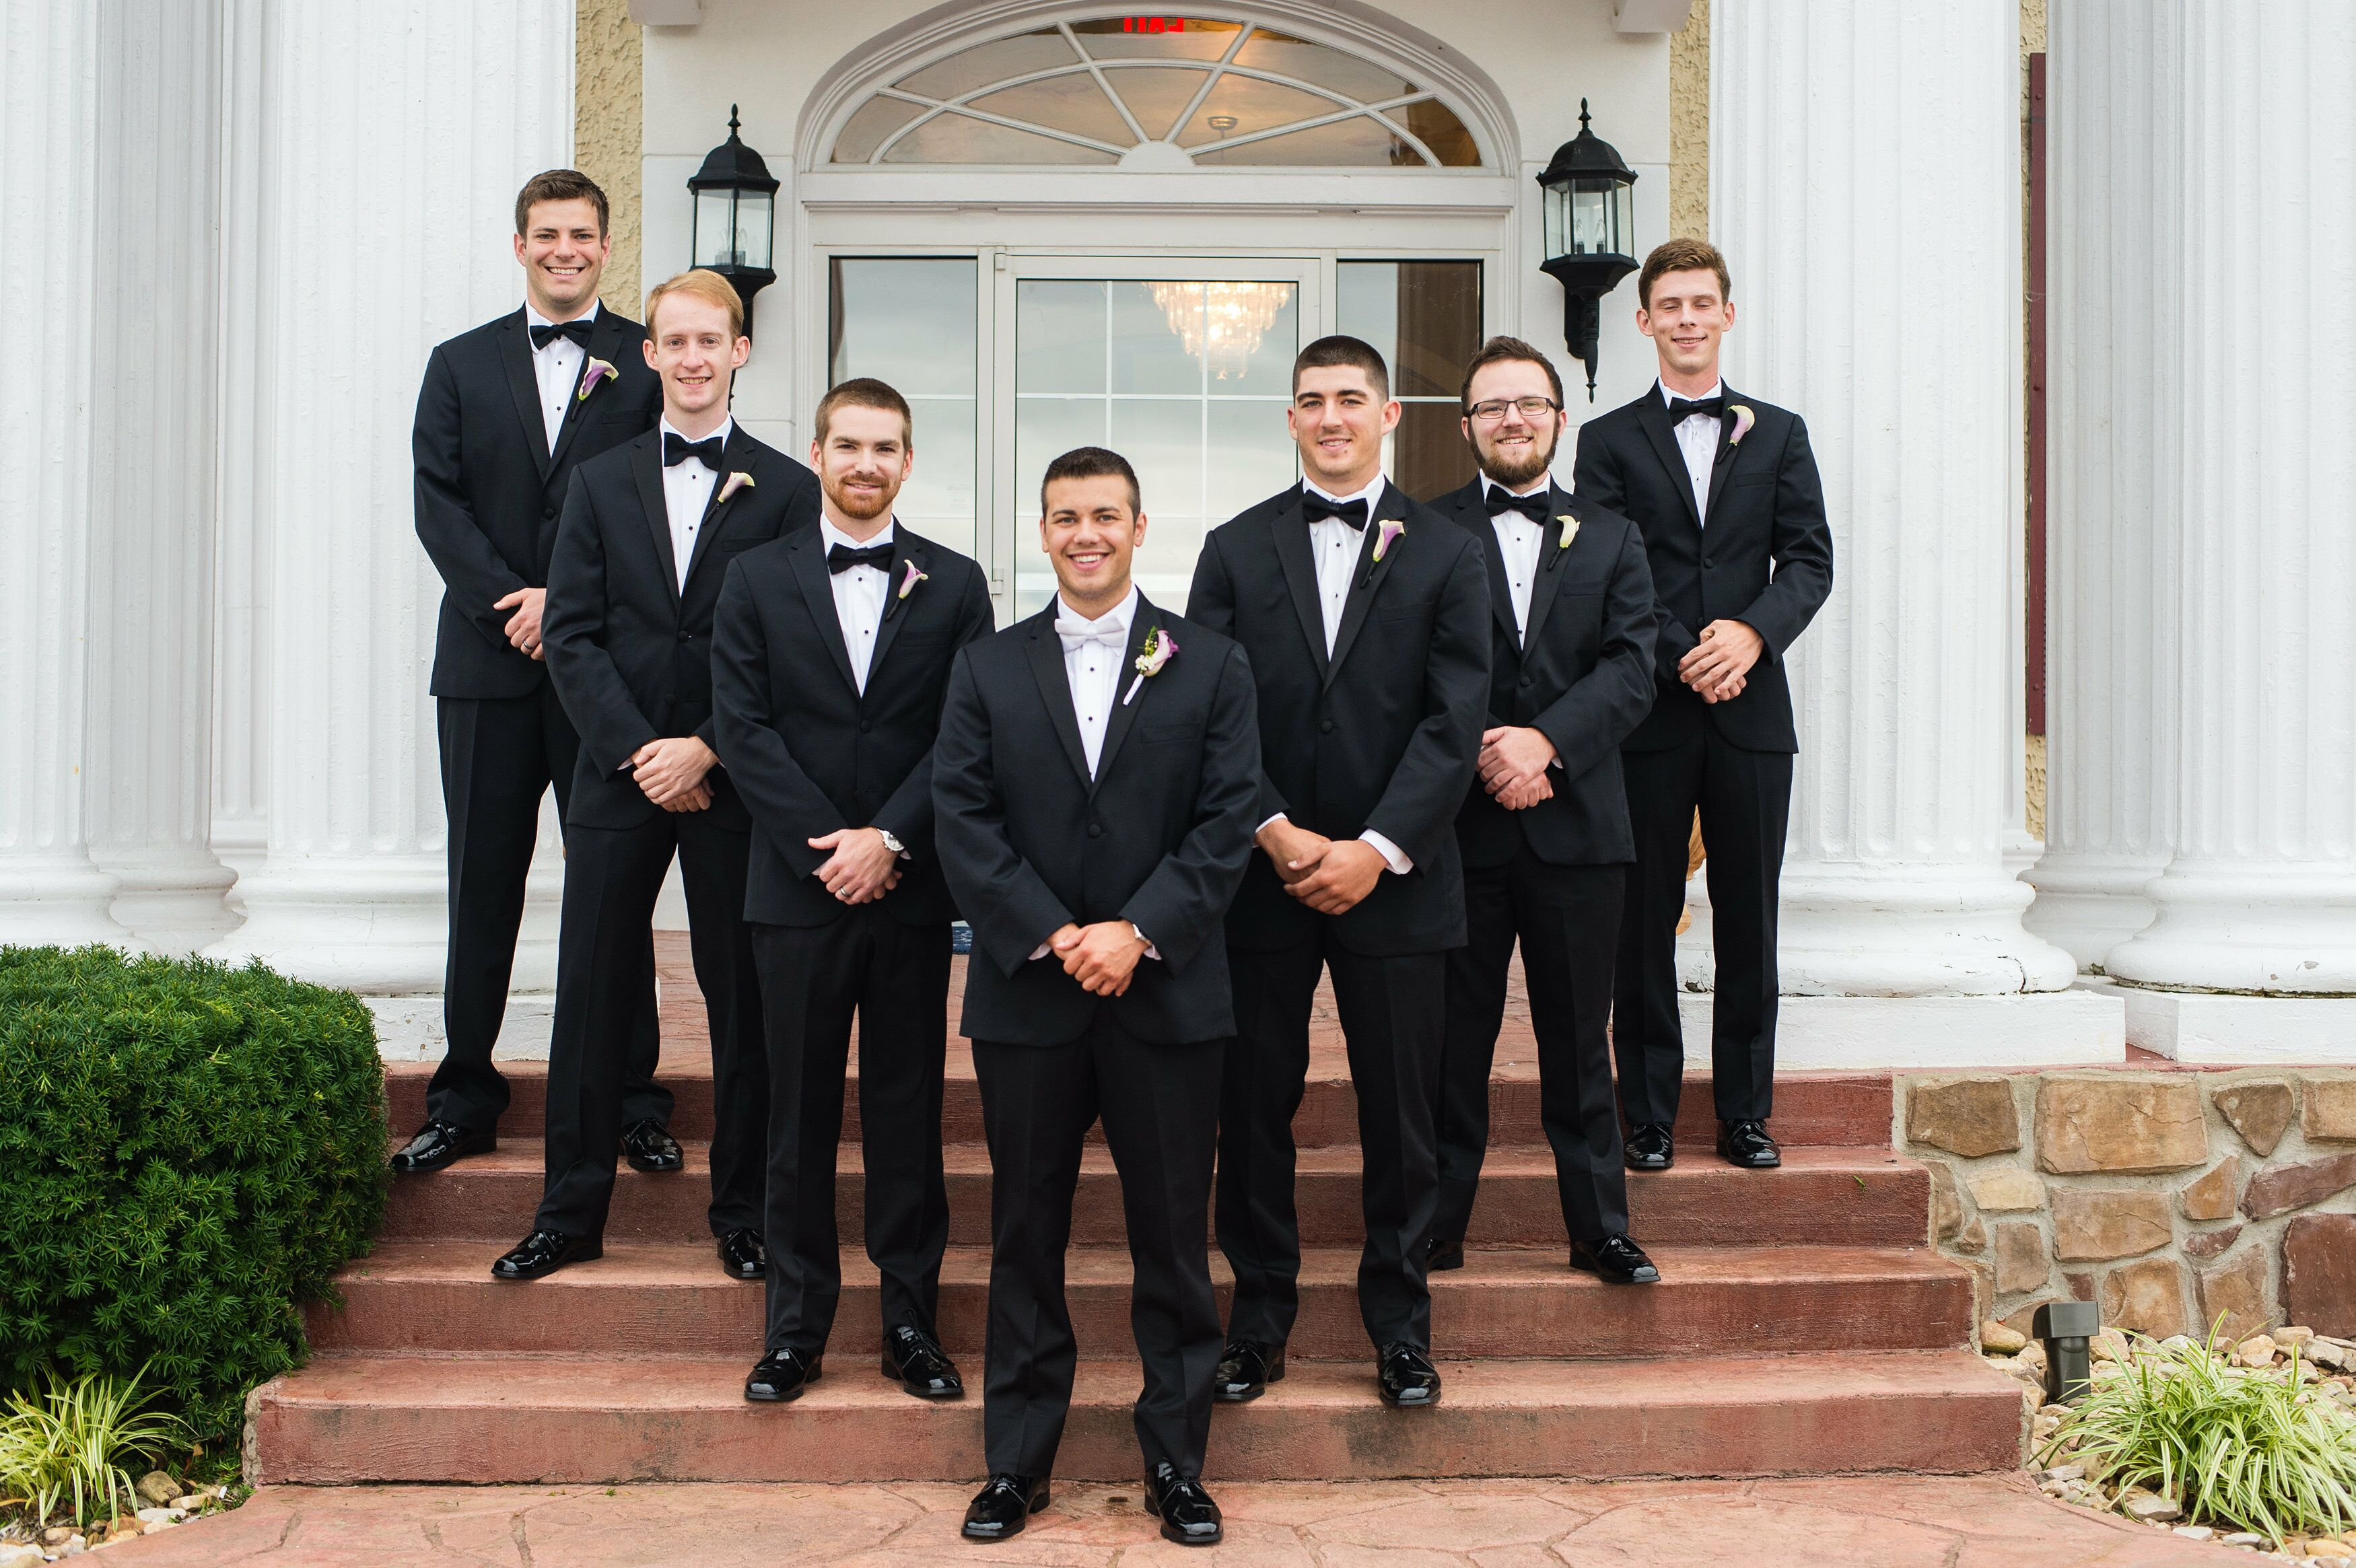 Classic Black Groomsmen Tuxedos And Bow Ties